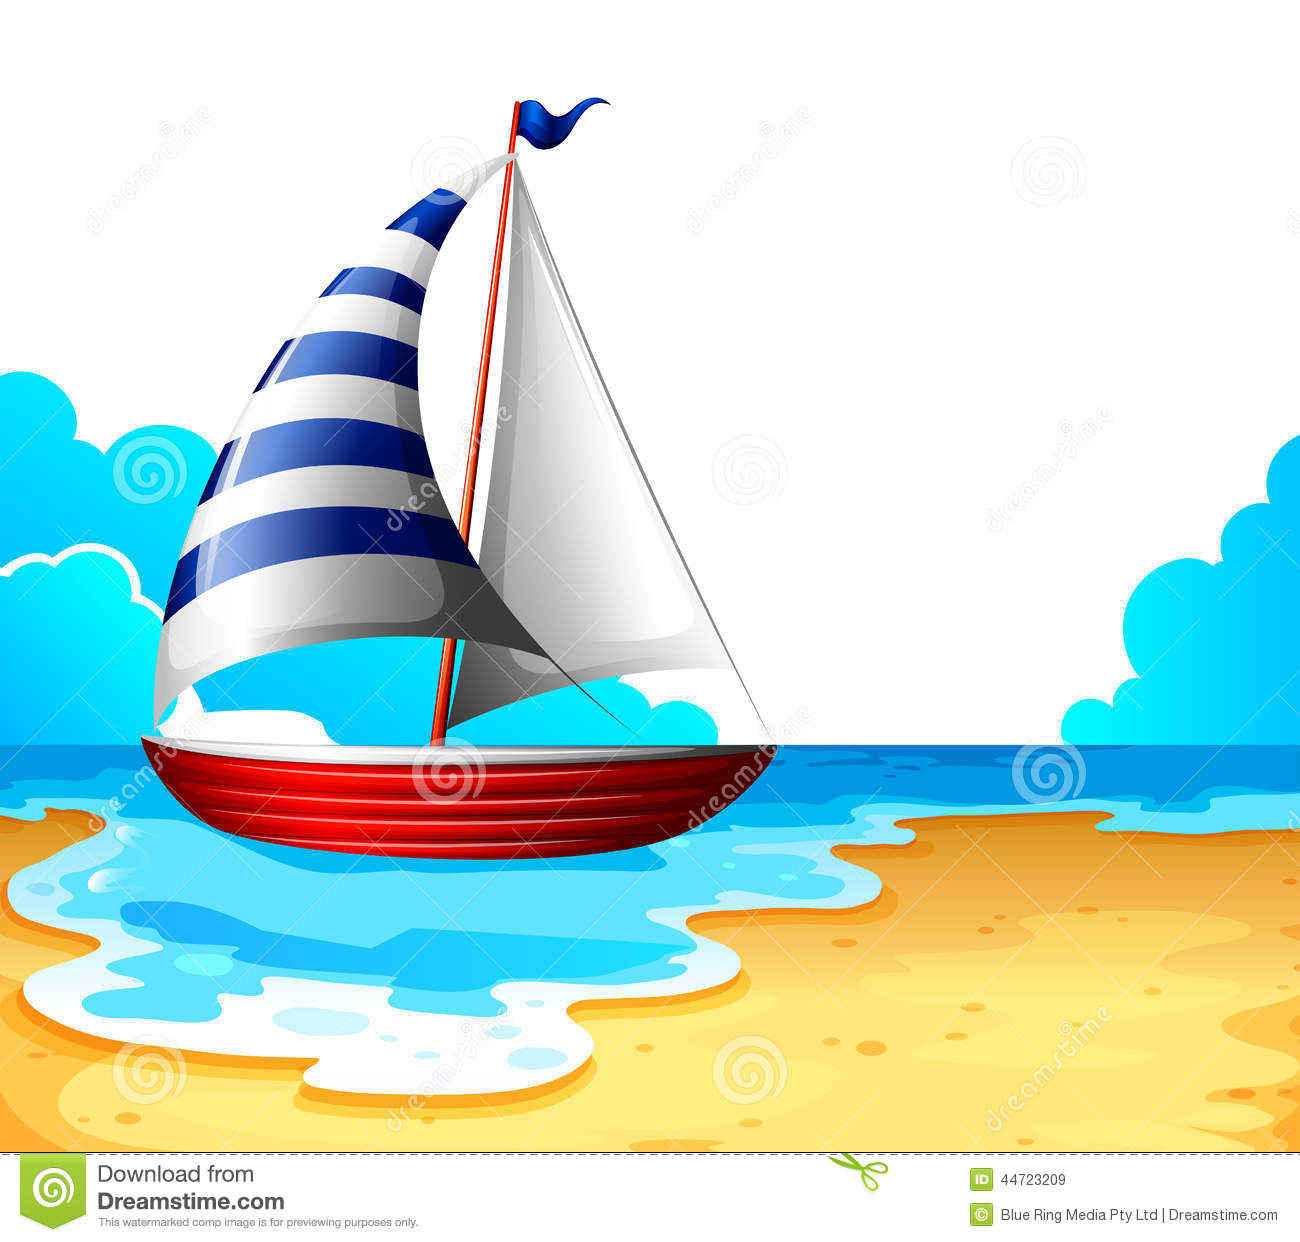 Sea Scene With Boat clip art (103481) Free SVG Download ...  Beach With Sailboat Clipart Cartoons